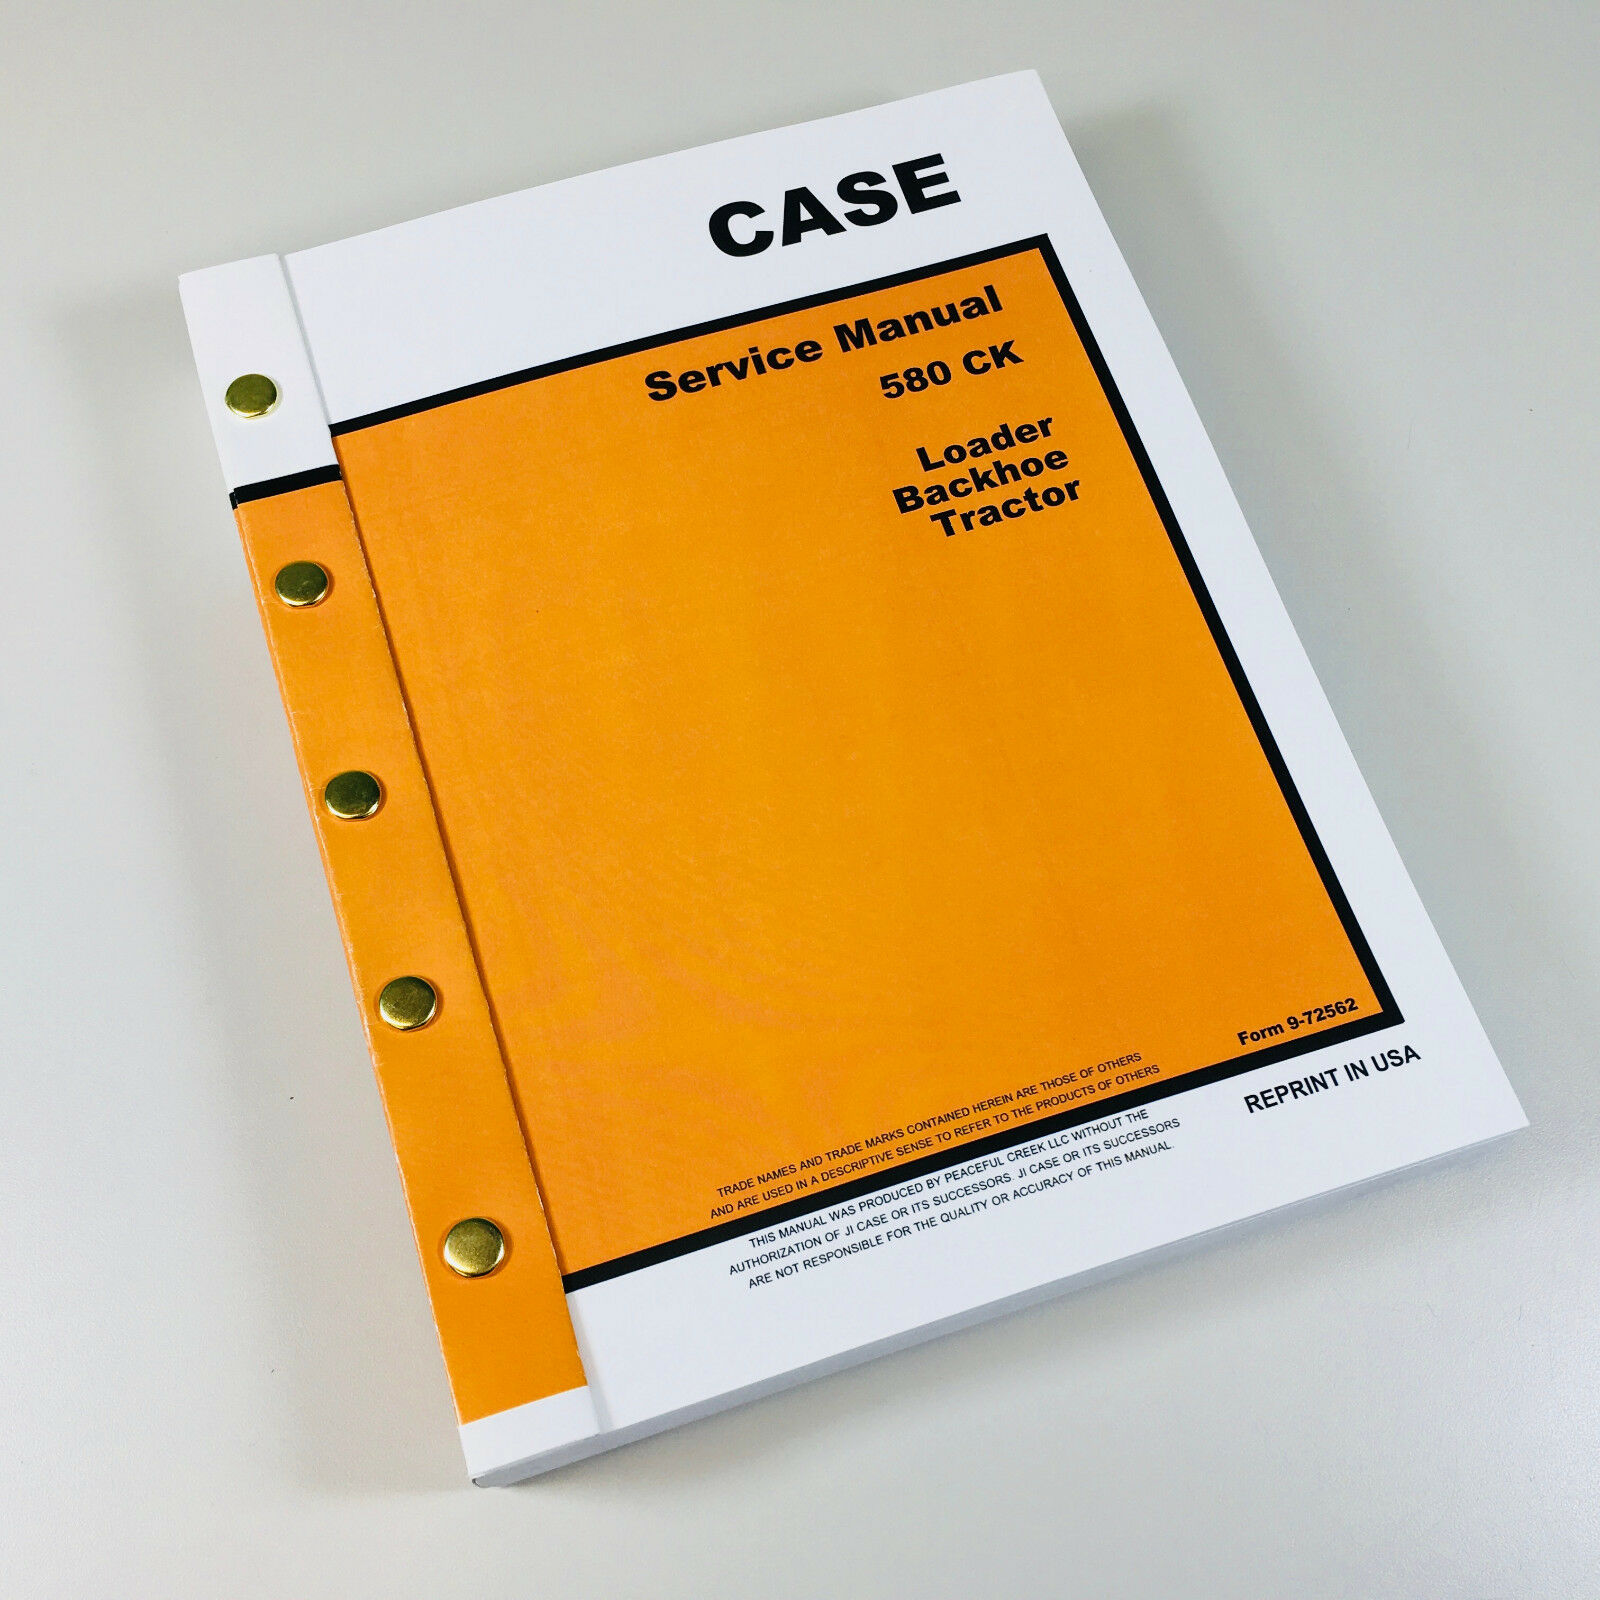 Case Ck Wiring Diagram Library 430ck 580 Tractor Loader Backhoe Service Repair Manual Parts